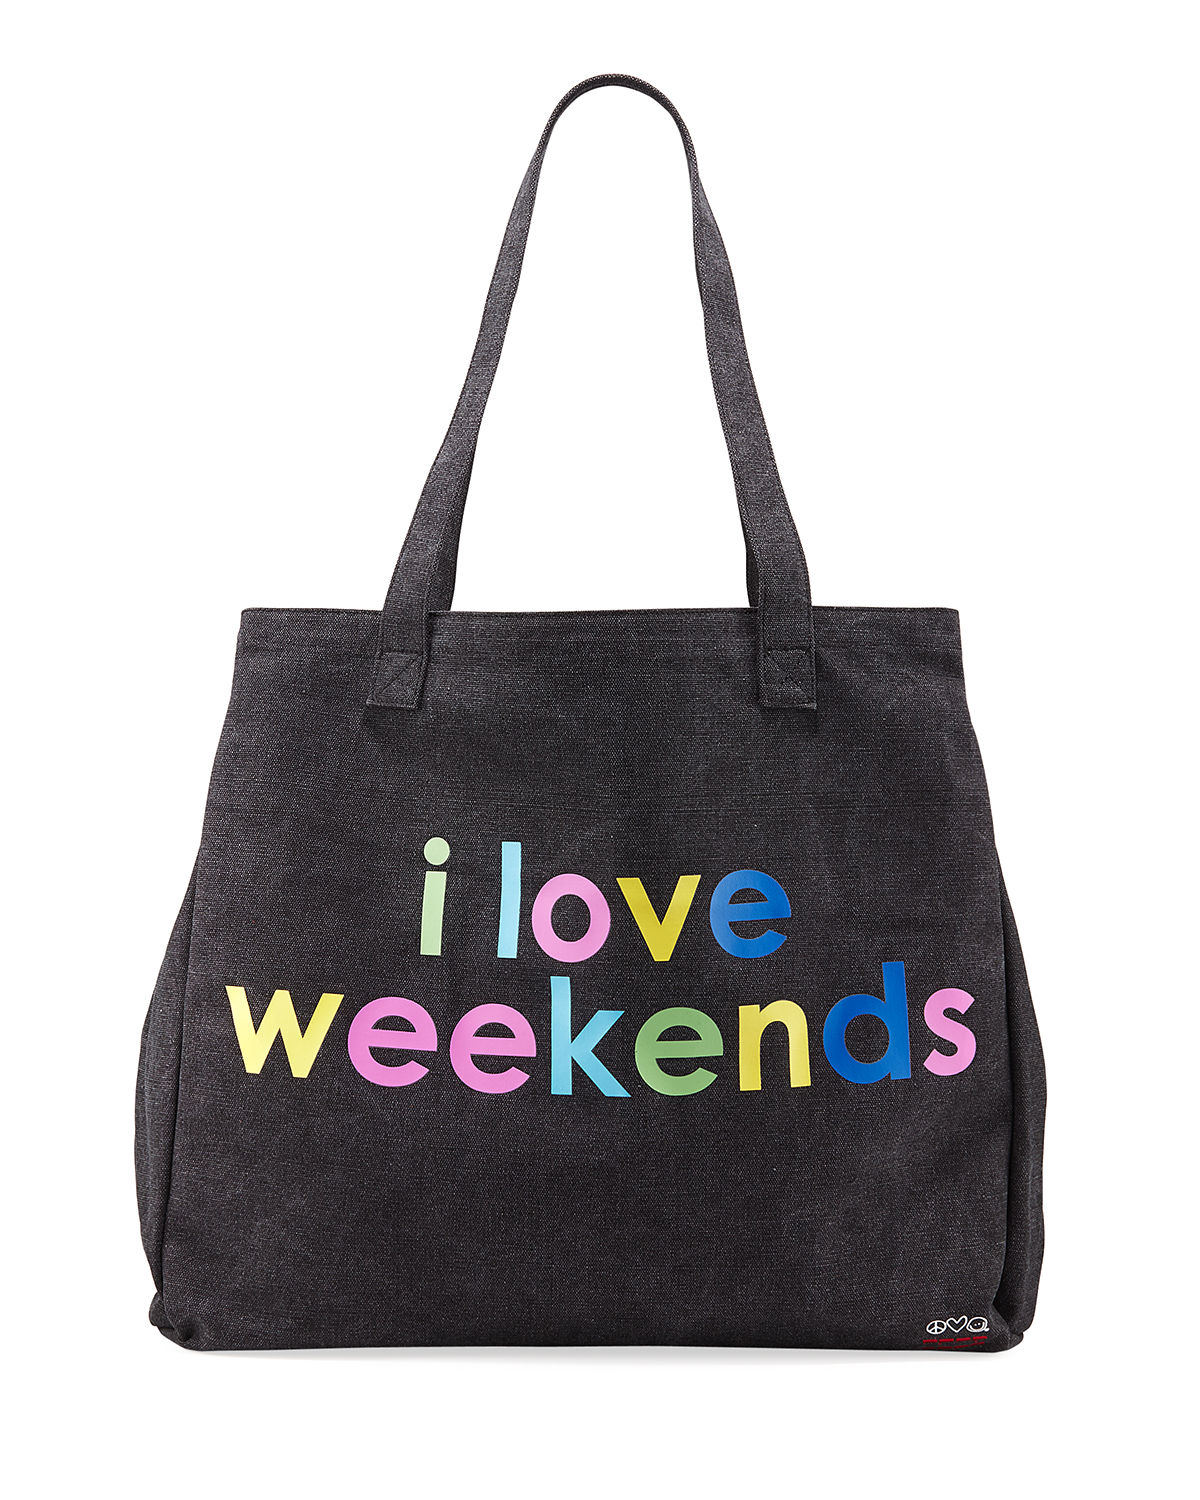 Rainbow Oversized Canvas Tote Bag